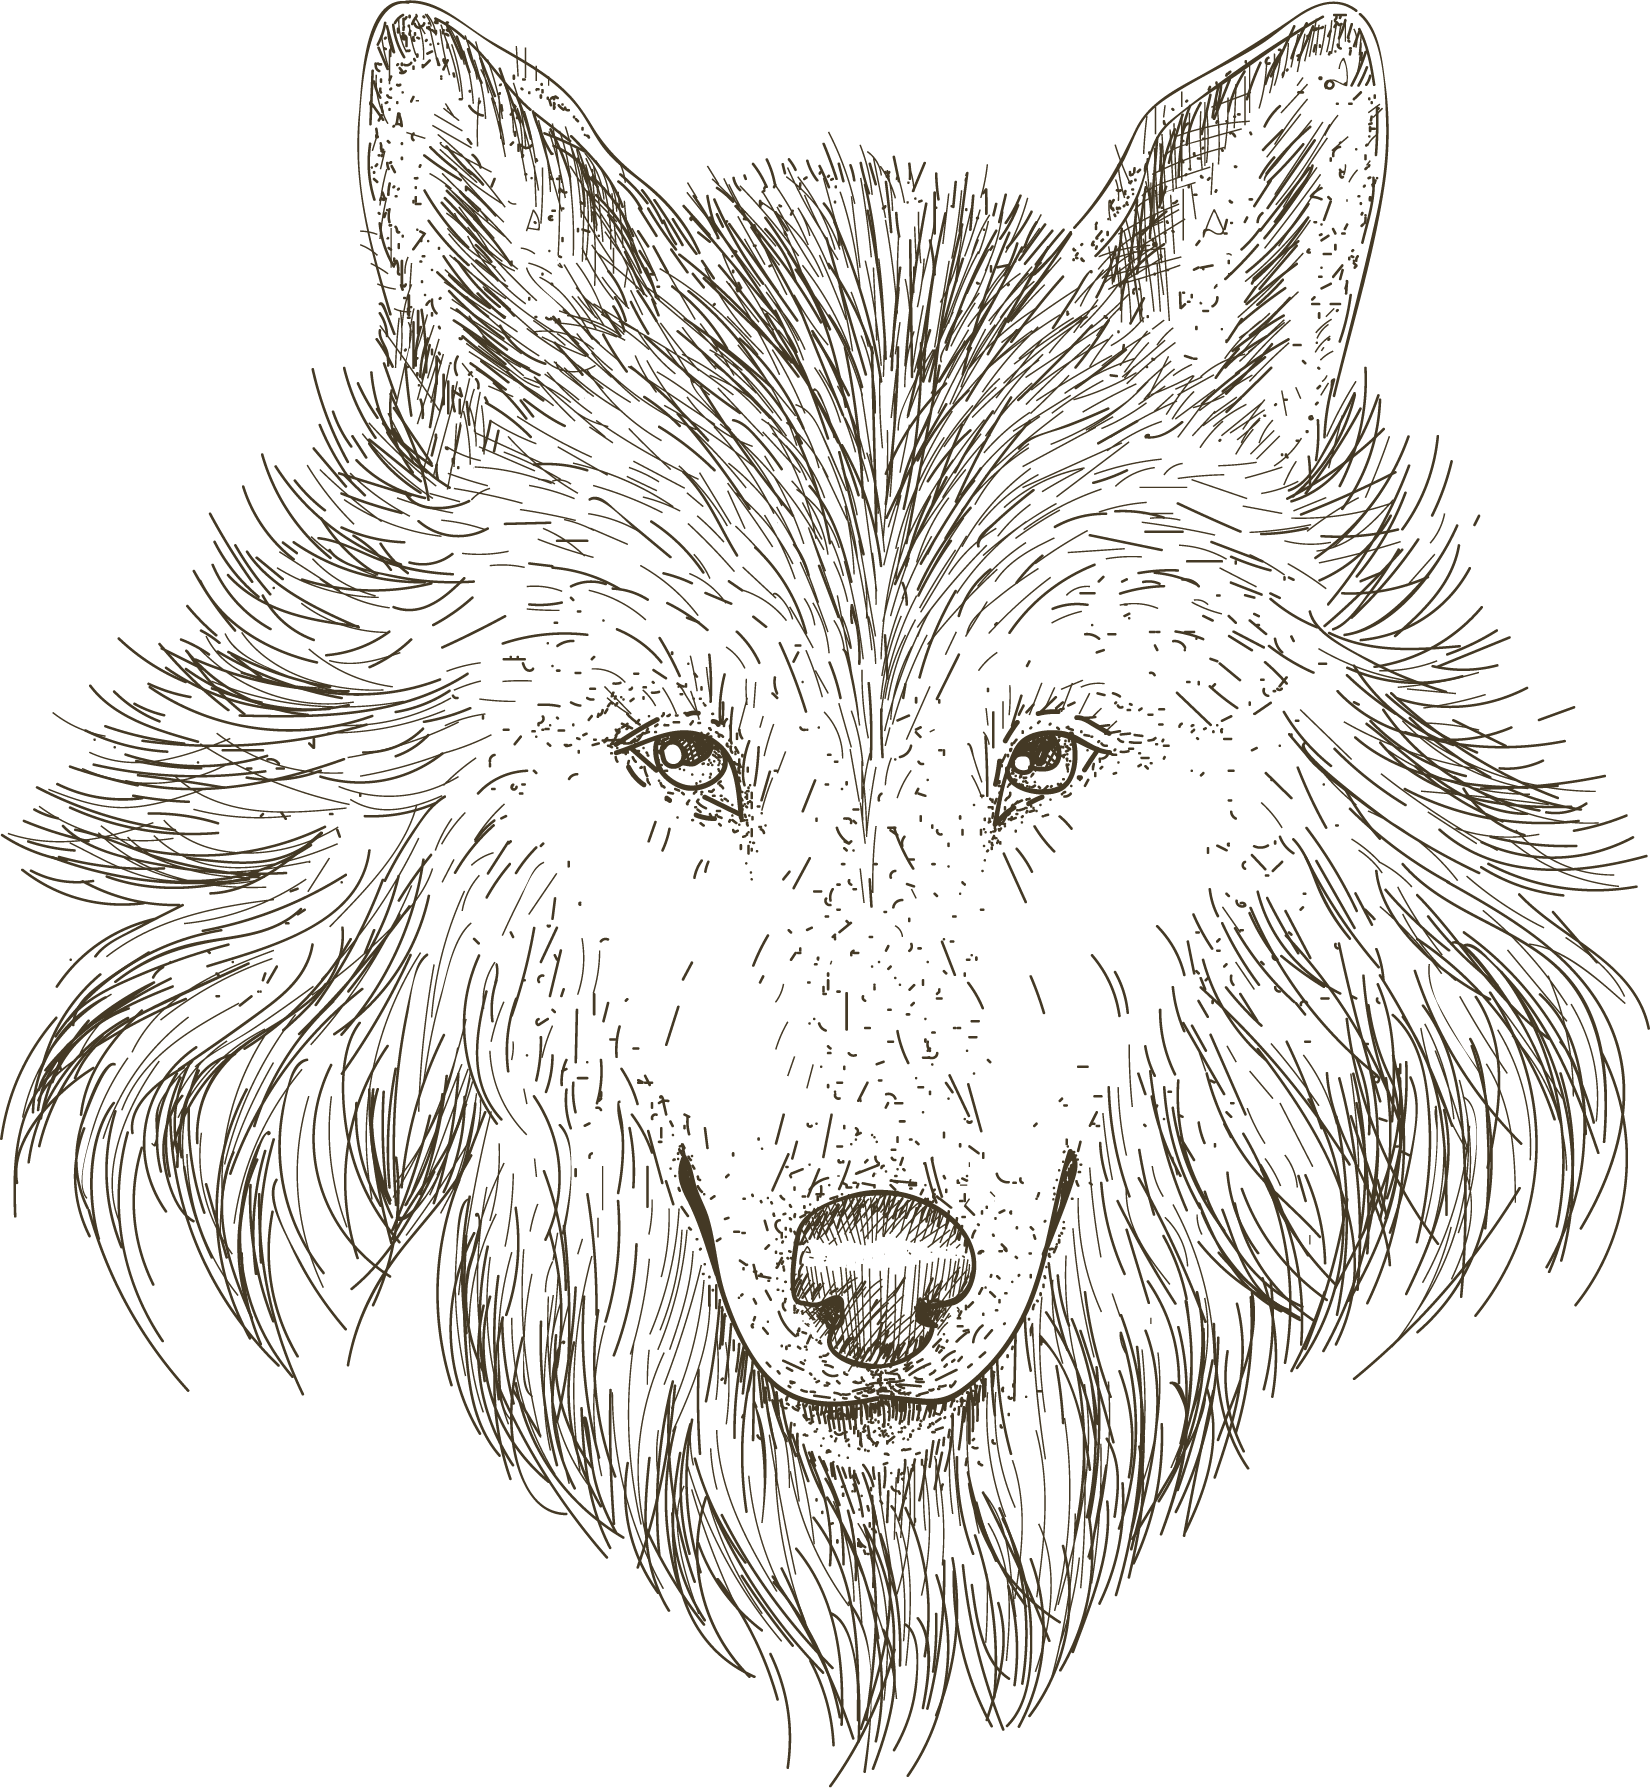 Wolf Drawing Drawing Of Wolf Transparent Transparent Png Original Size Png Image Pngjoy